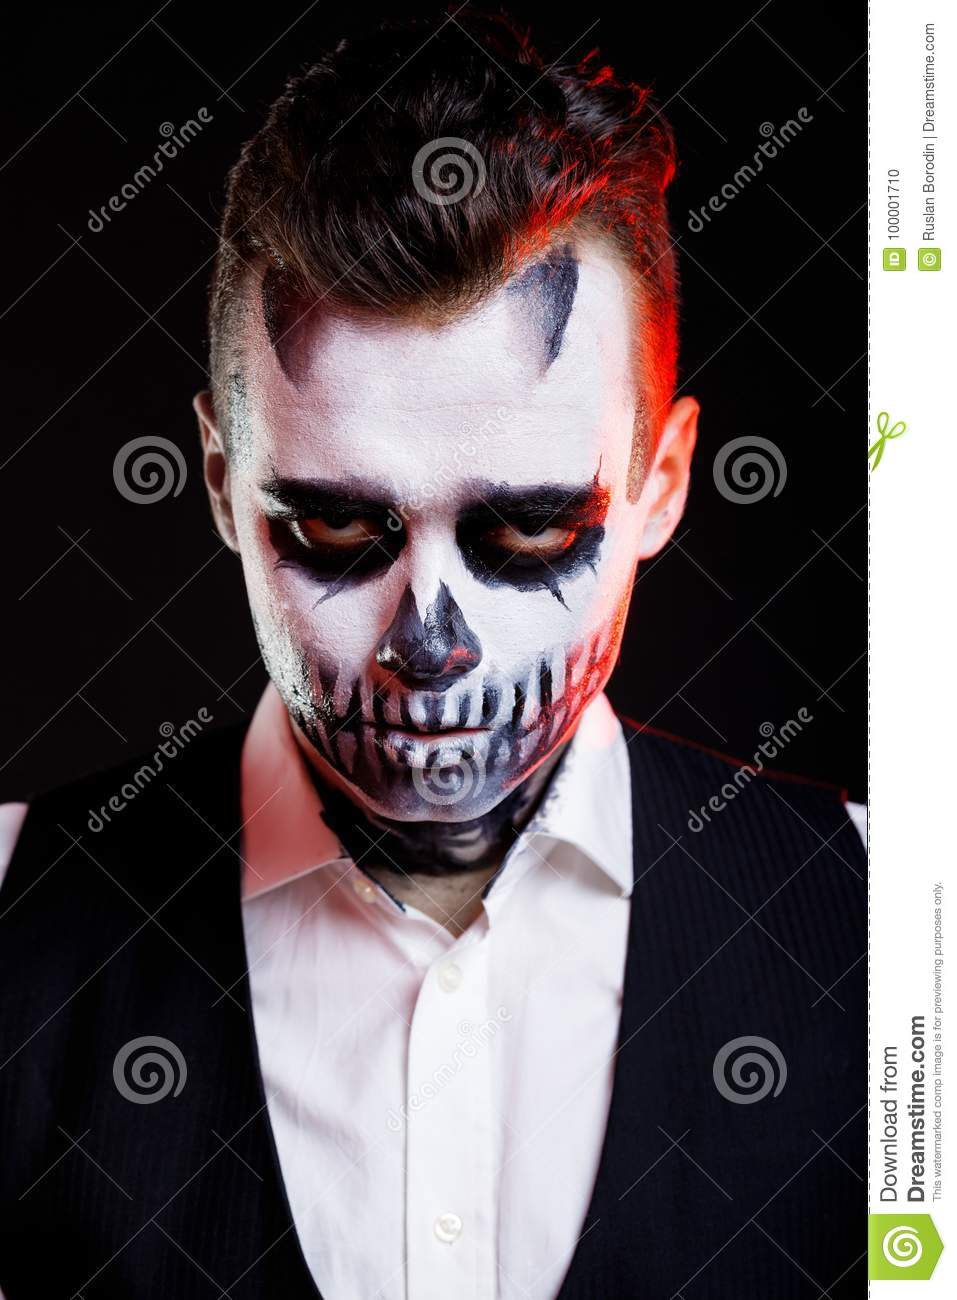 red lights on man with creative make up for the halloween party stock photo image of dead. Black Bedroom Furniture Sets. Home Design Ideas